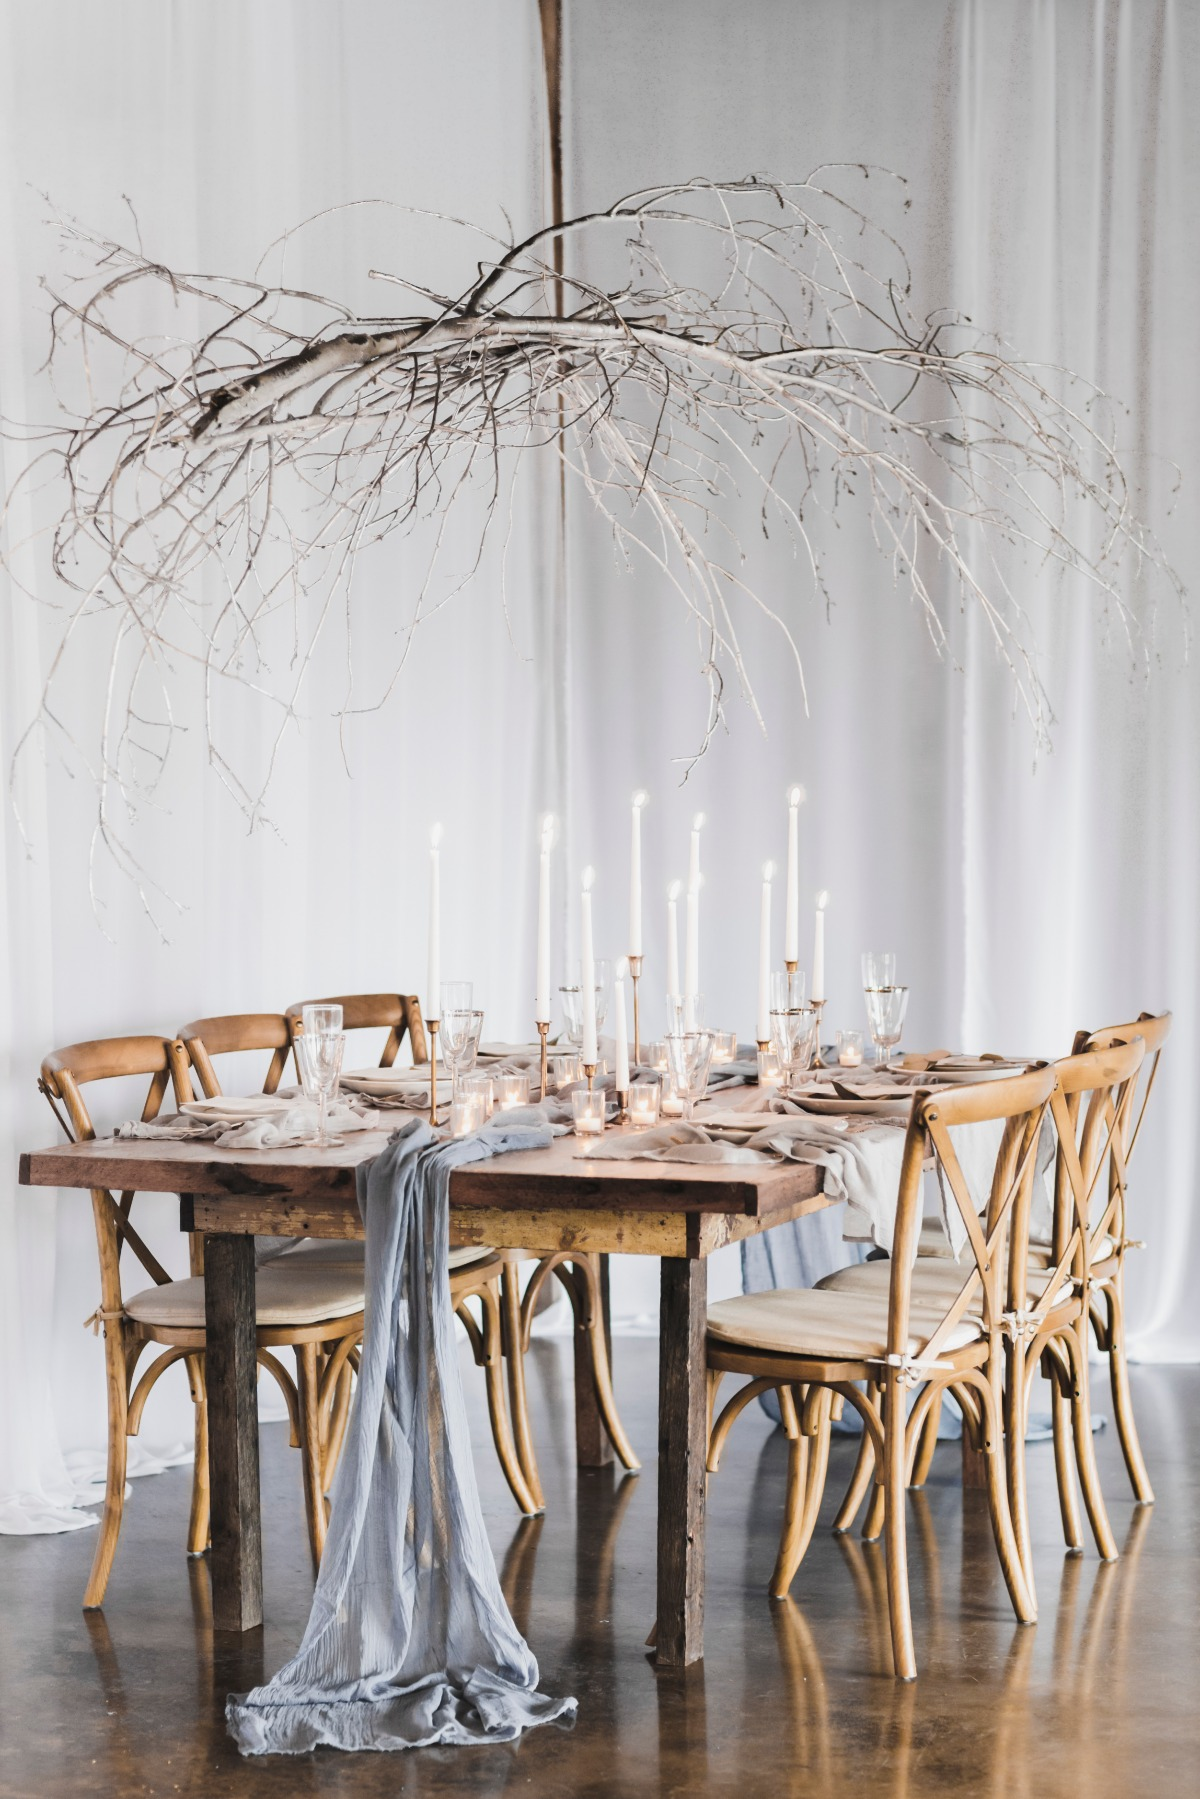 Rustic candle lit table decor